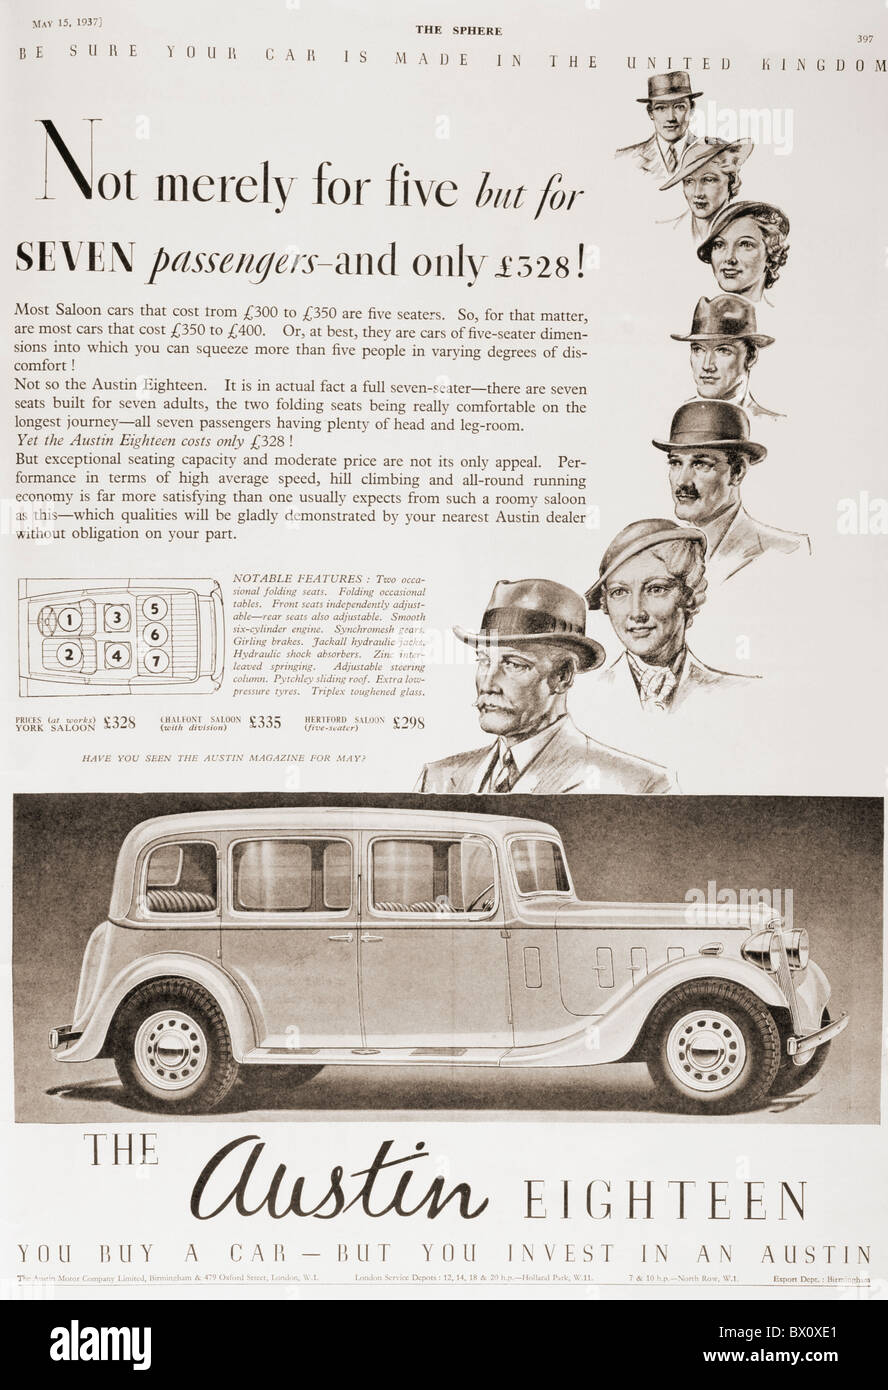 1937 advertisement for the Austin Eighteen car. From The Shpere, Coronation Record Number, published 1937. - Stock Image